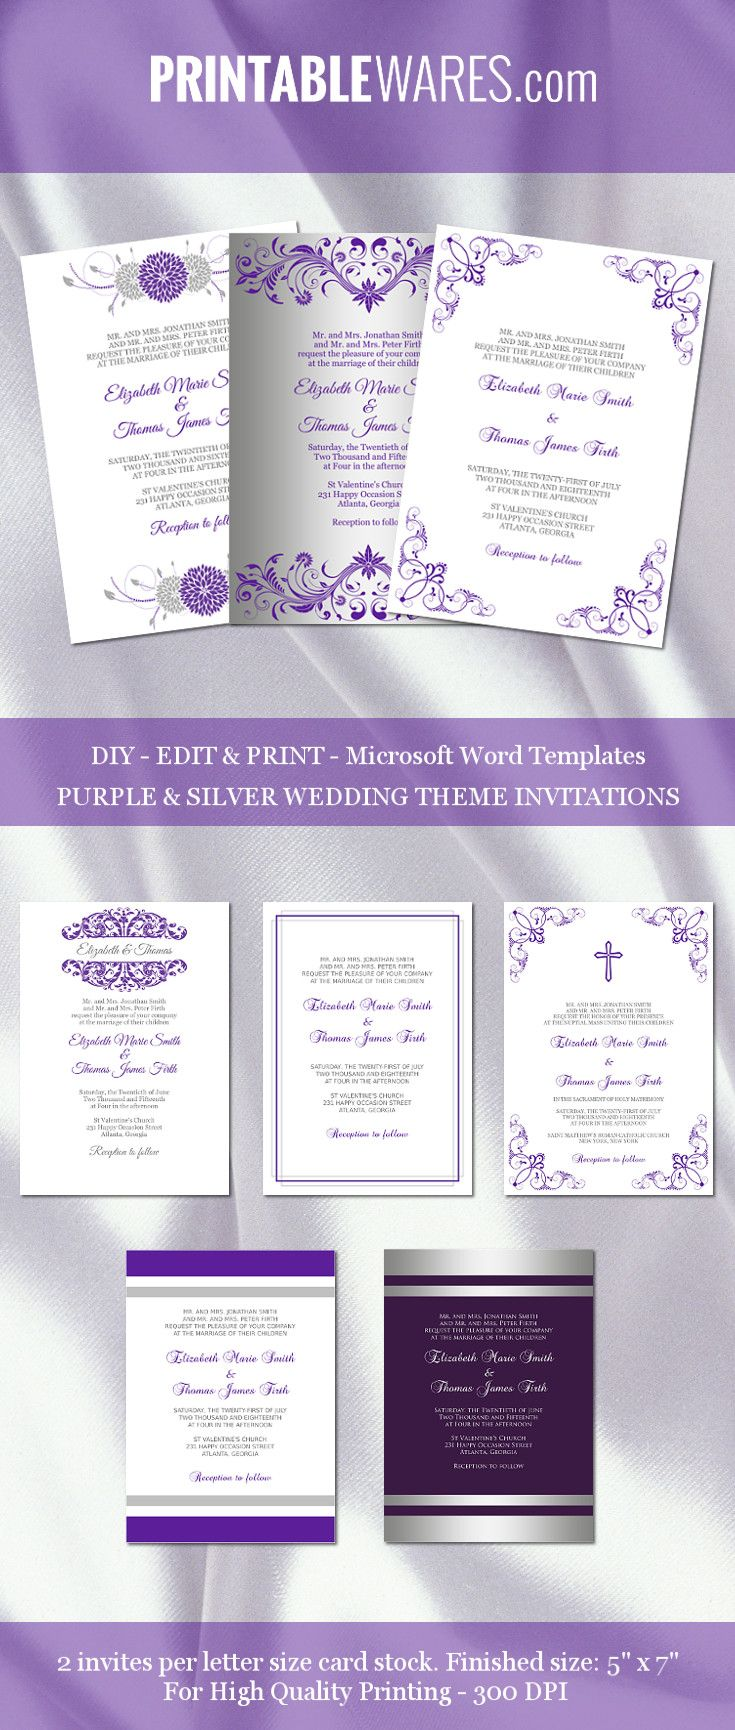 Purple and silver wedding invitation templates for Microsoft Word ...